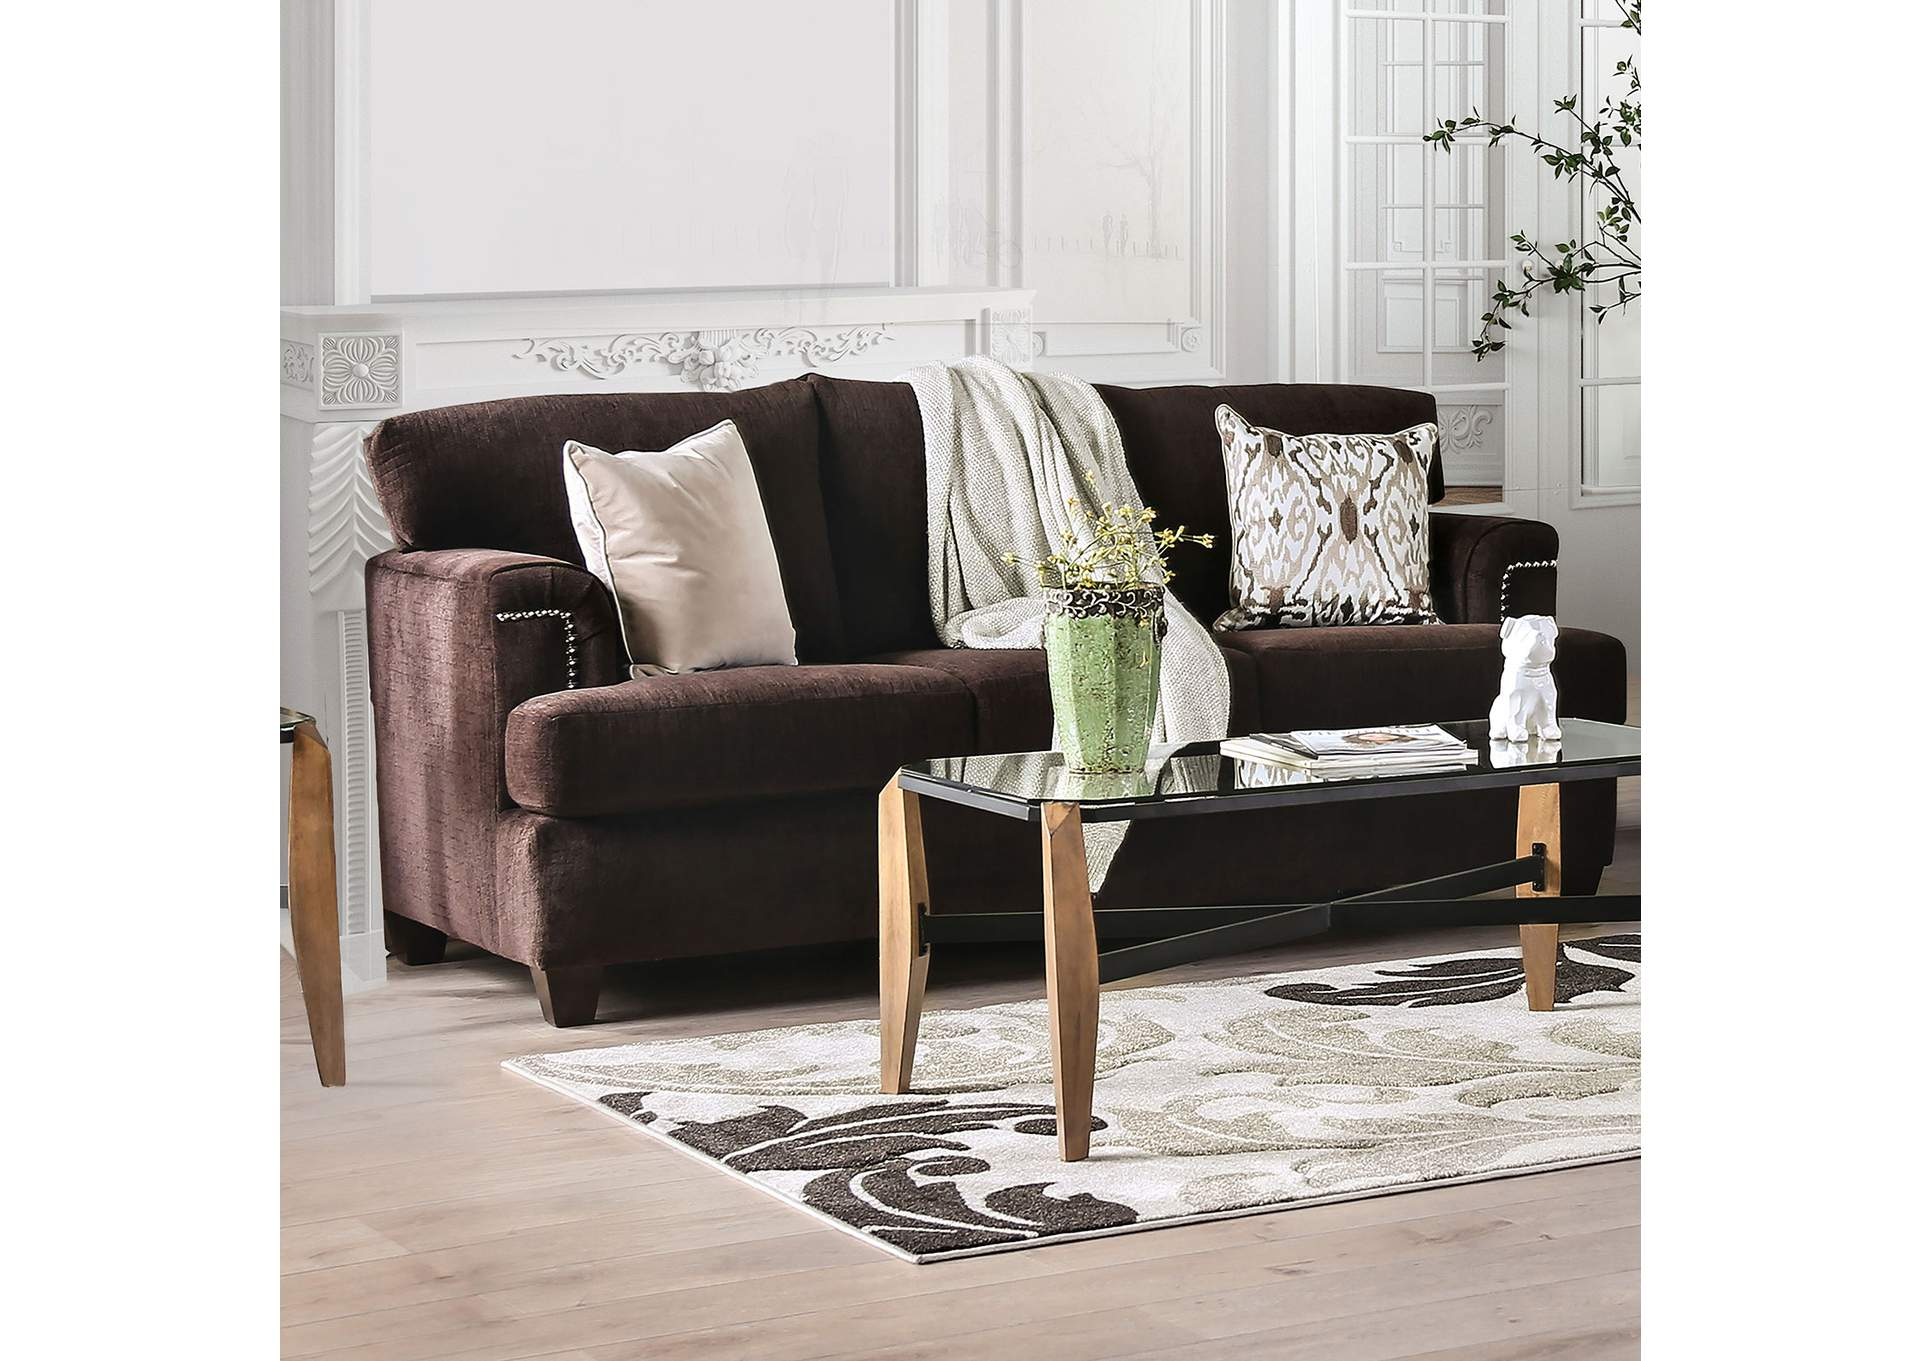 Brynlee Chocolate Sofa,Furniture of America